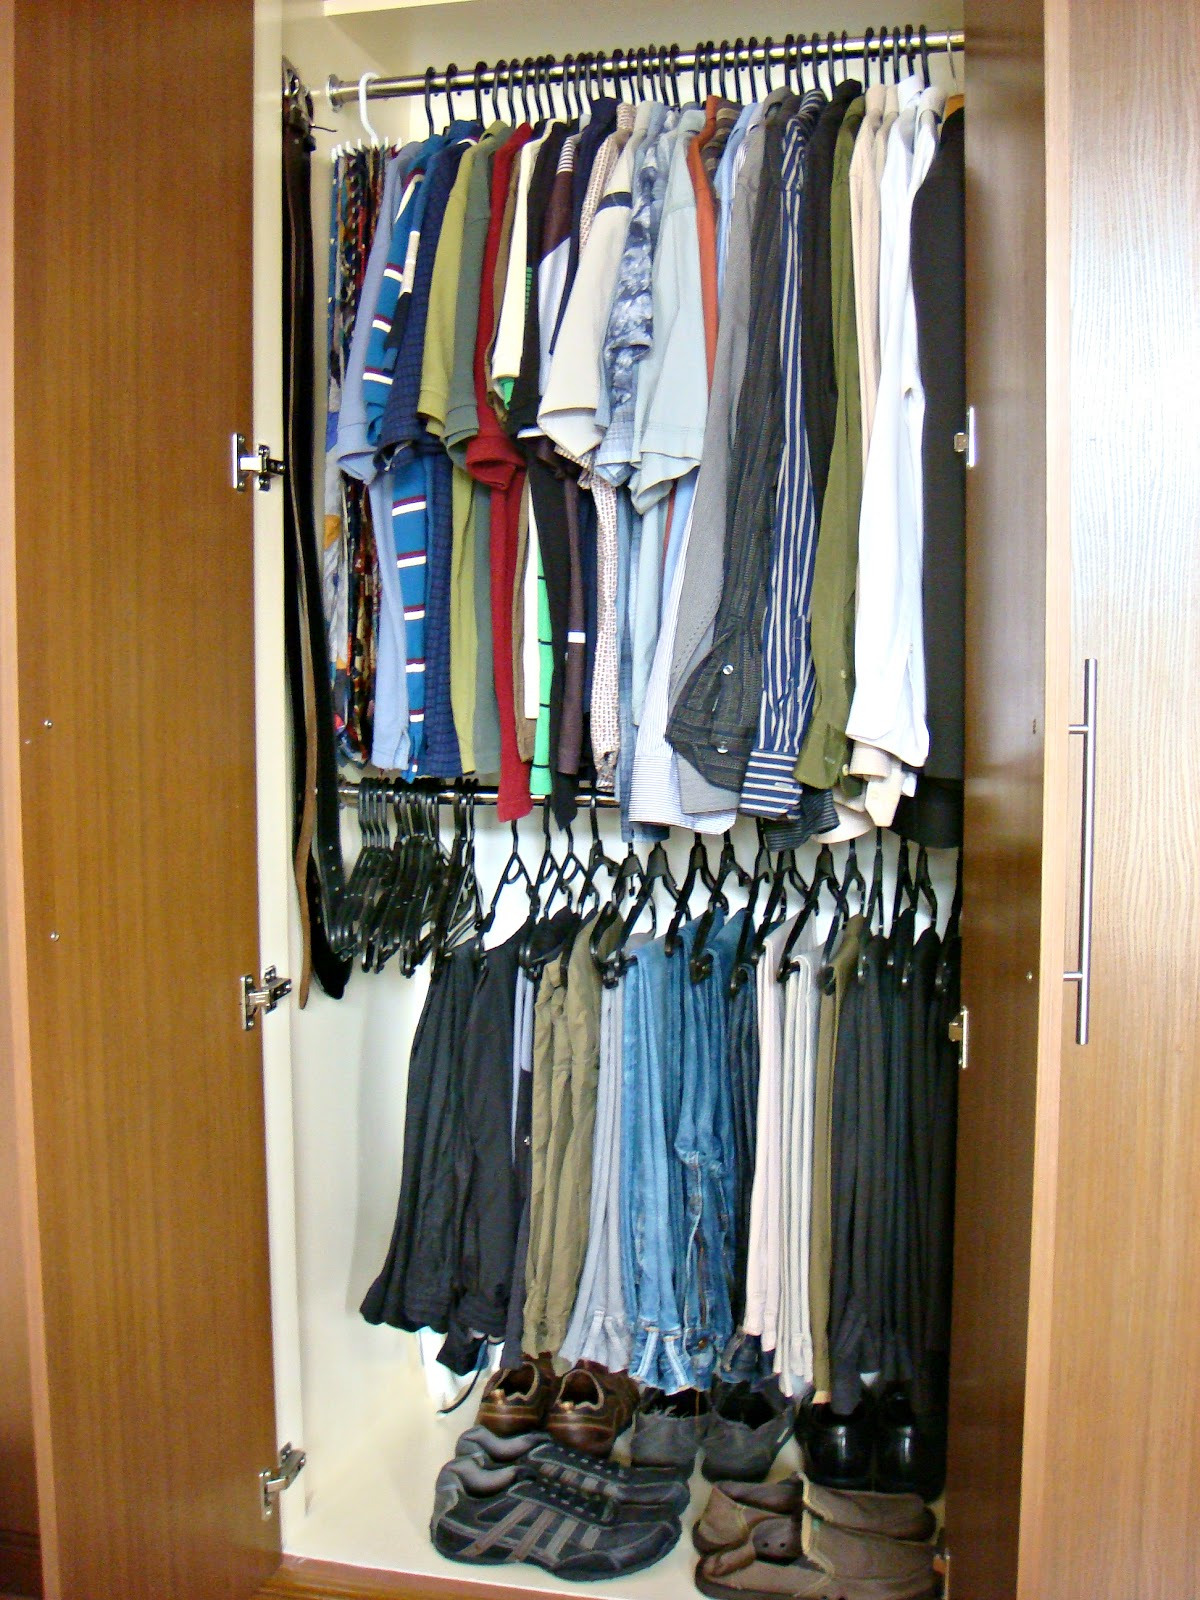 Fresh and organized organizing and maximizing space in a for Maximize small closet